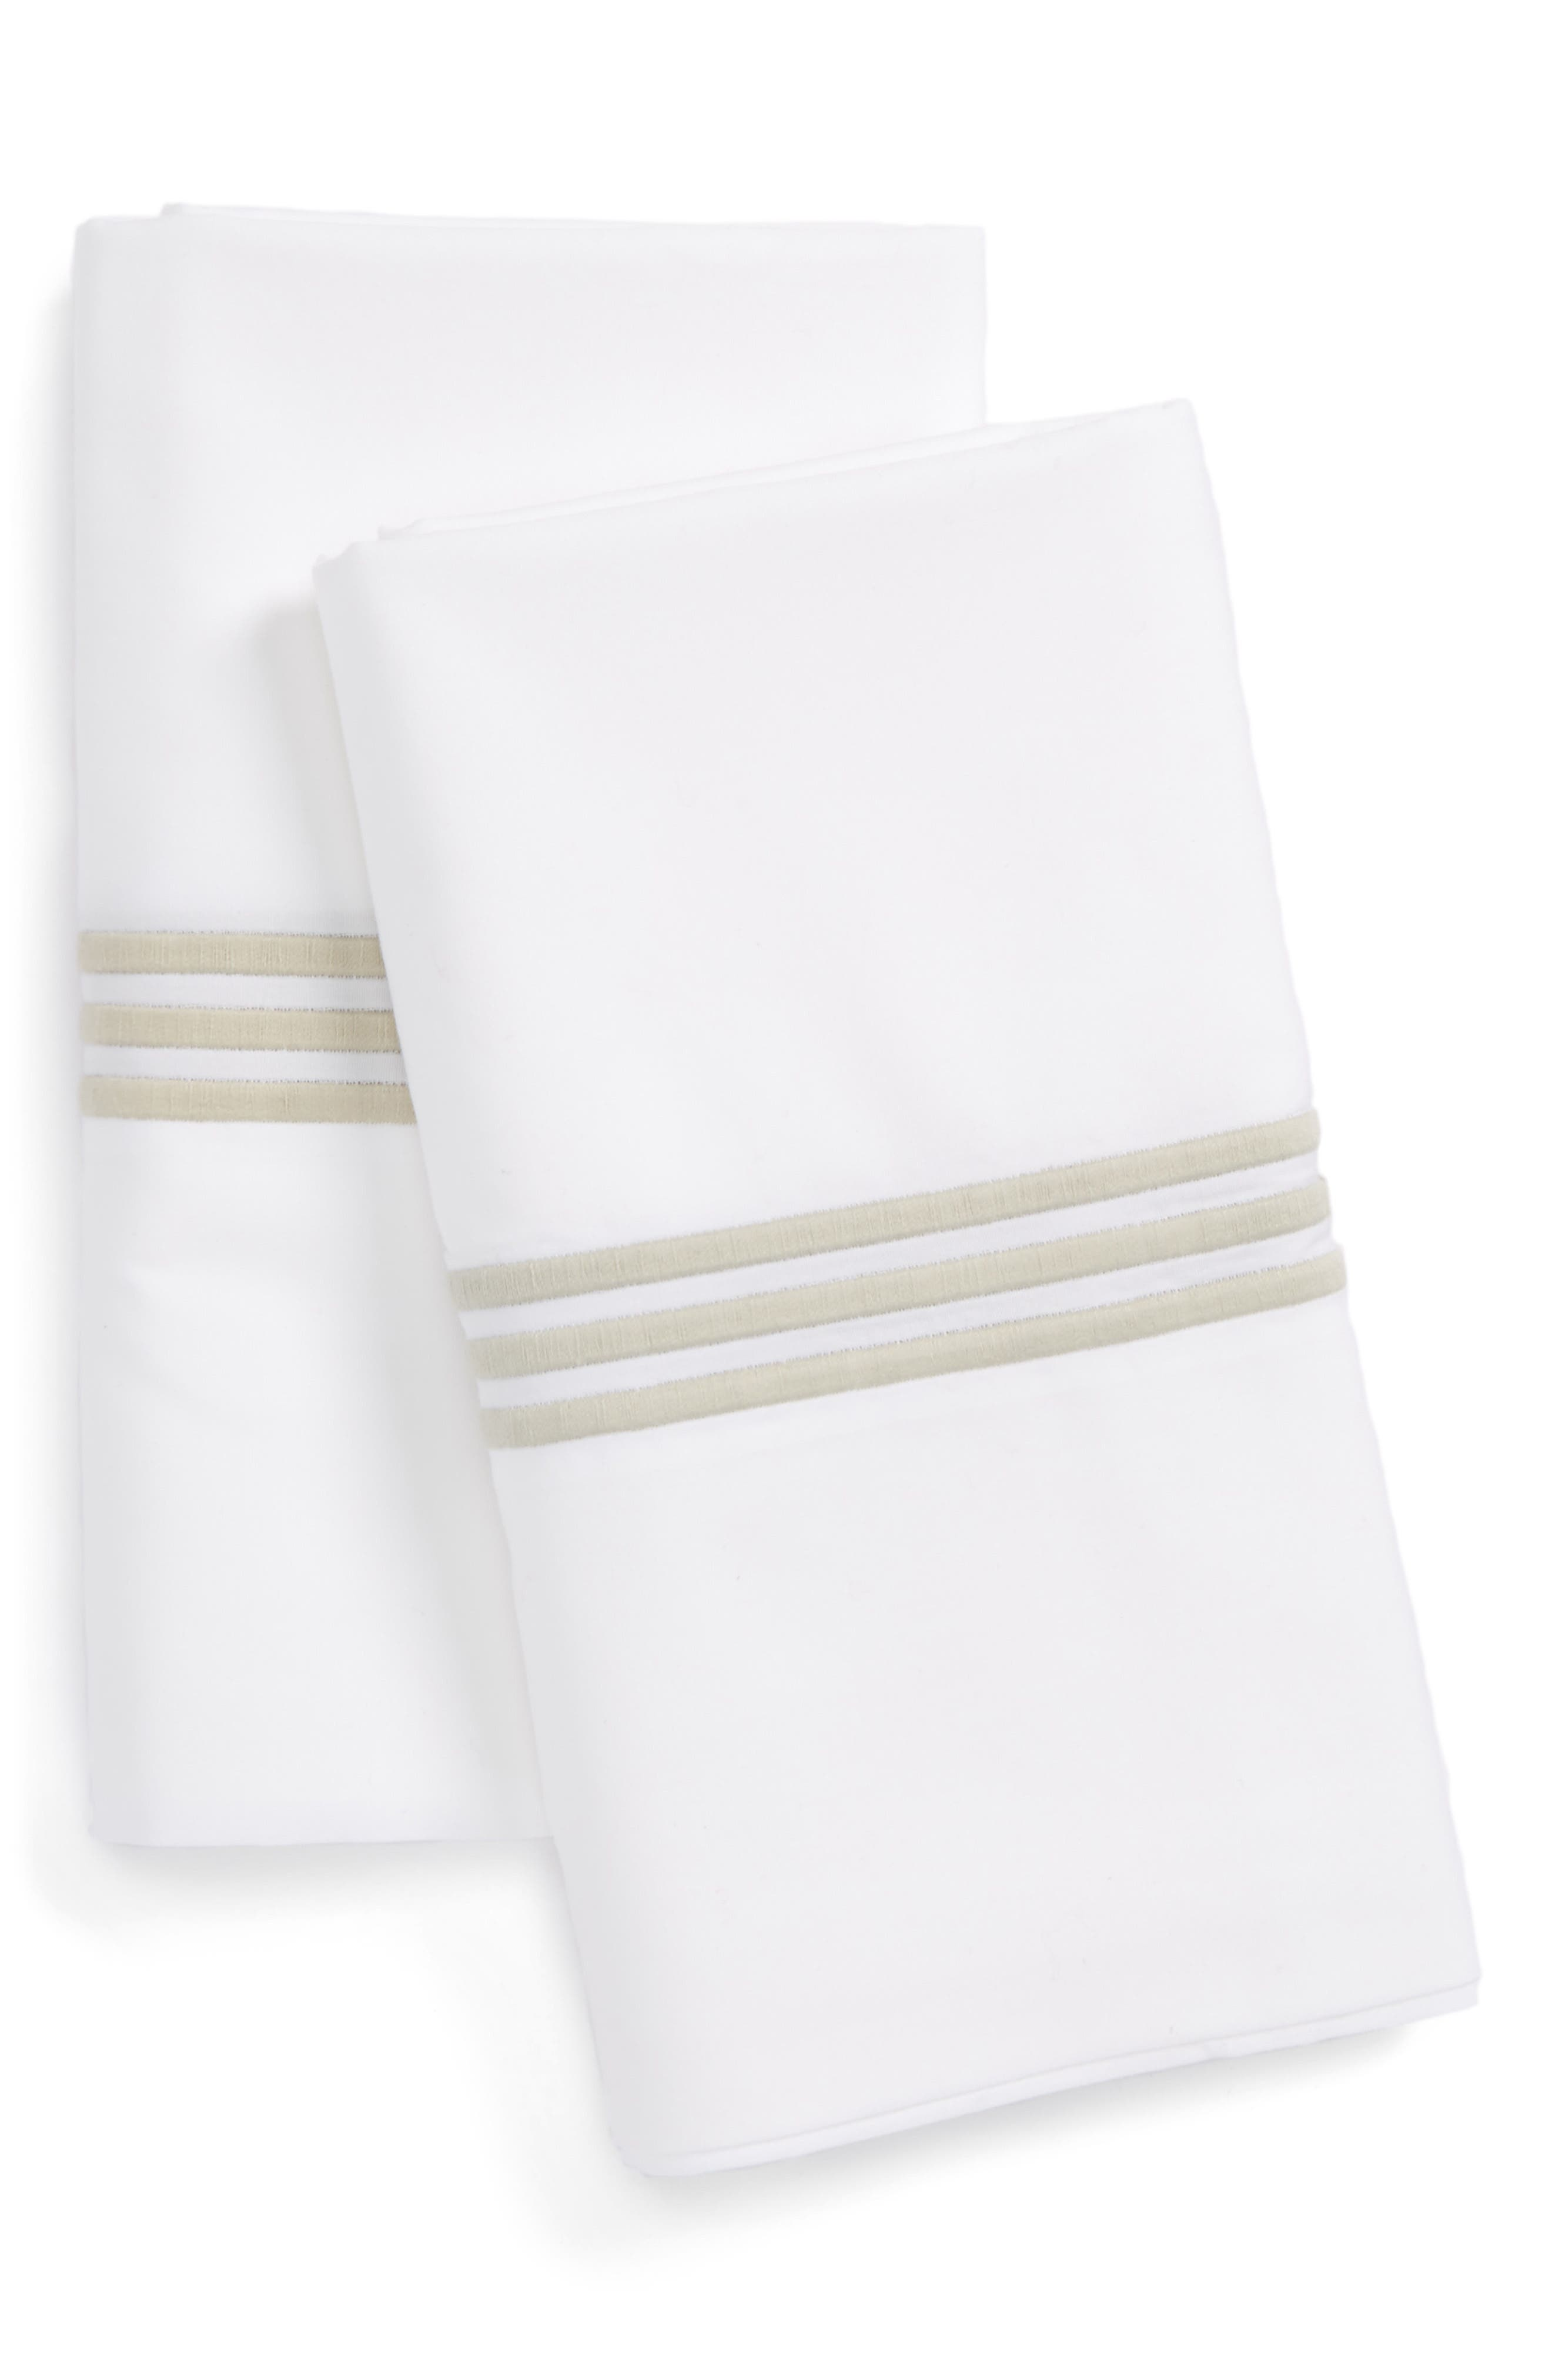 Bel Tempo Pillowcases,                         Main,                         color, Almond